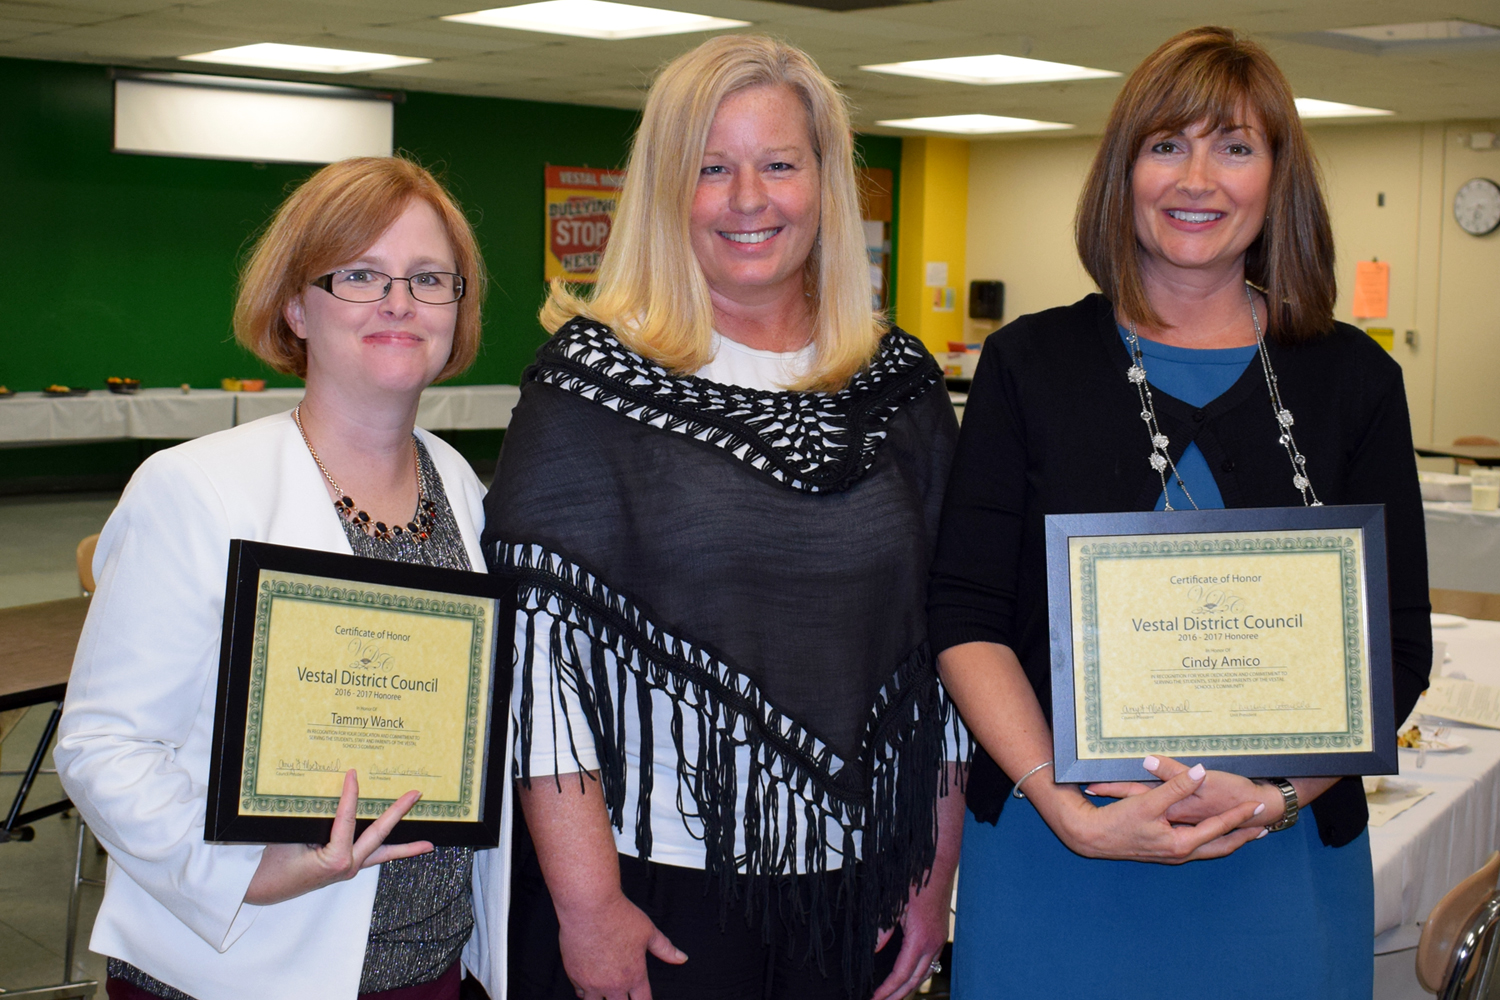 Glenwood teachers Tammy Wanck and Cindy Amico flank Glenwood Elementary Principal Doreen McSain with